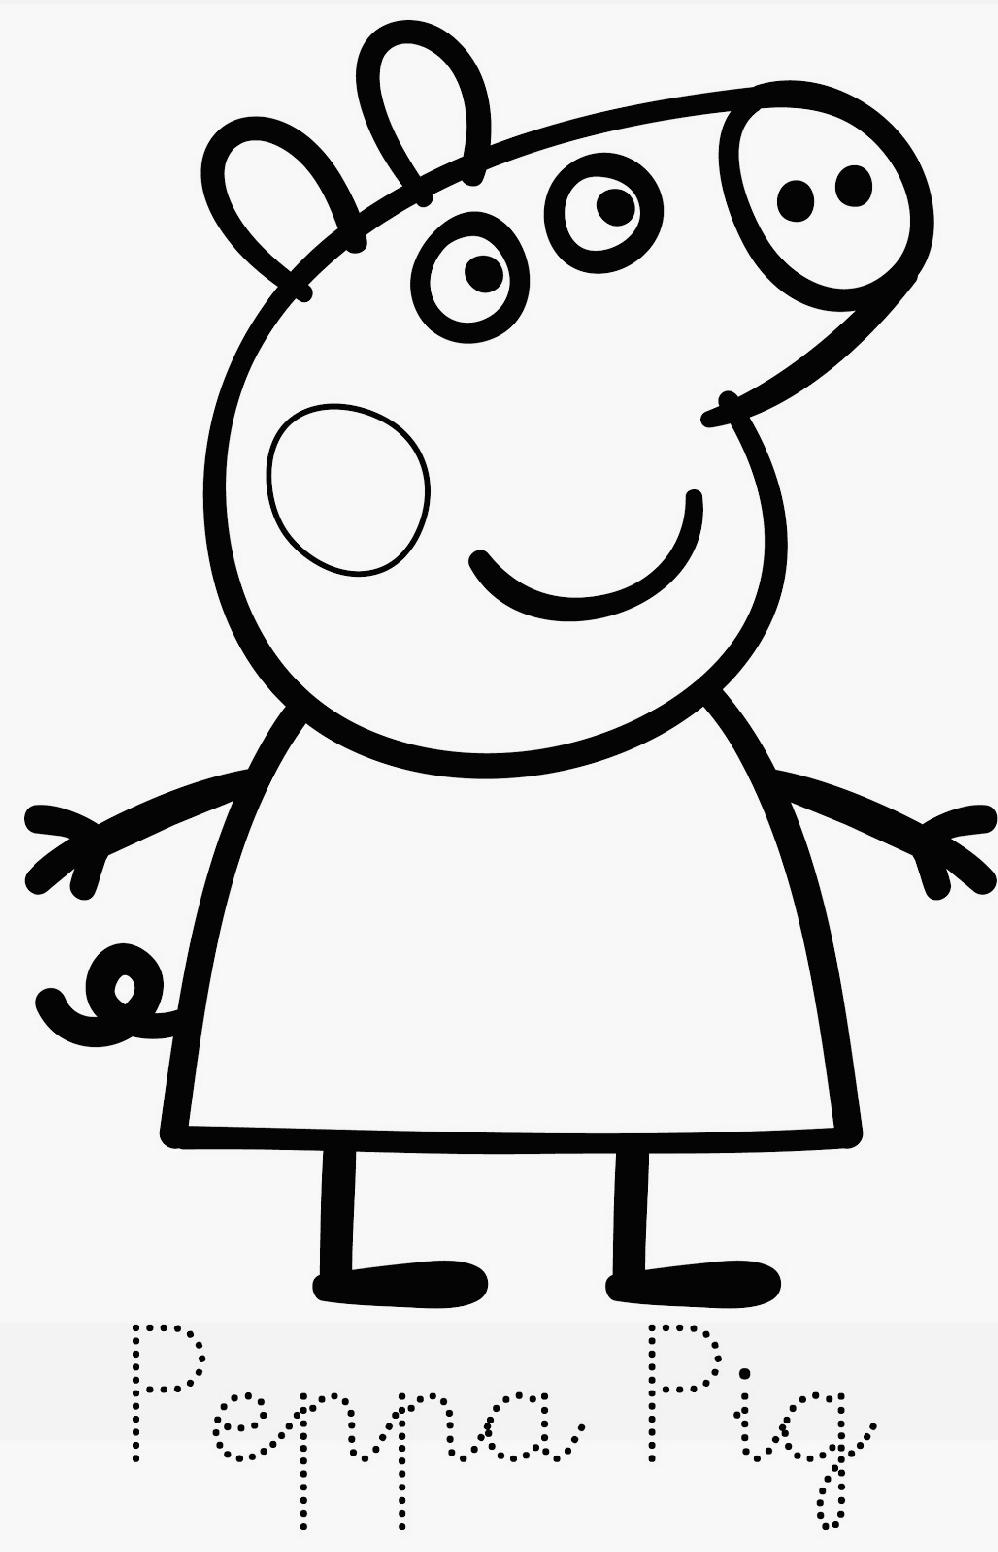 Line Drawing Of A Pig Face : Dessins de coloriage peppa pig à imprimer sur